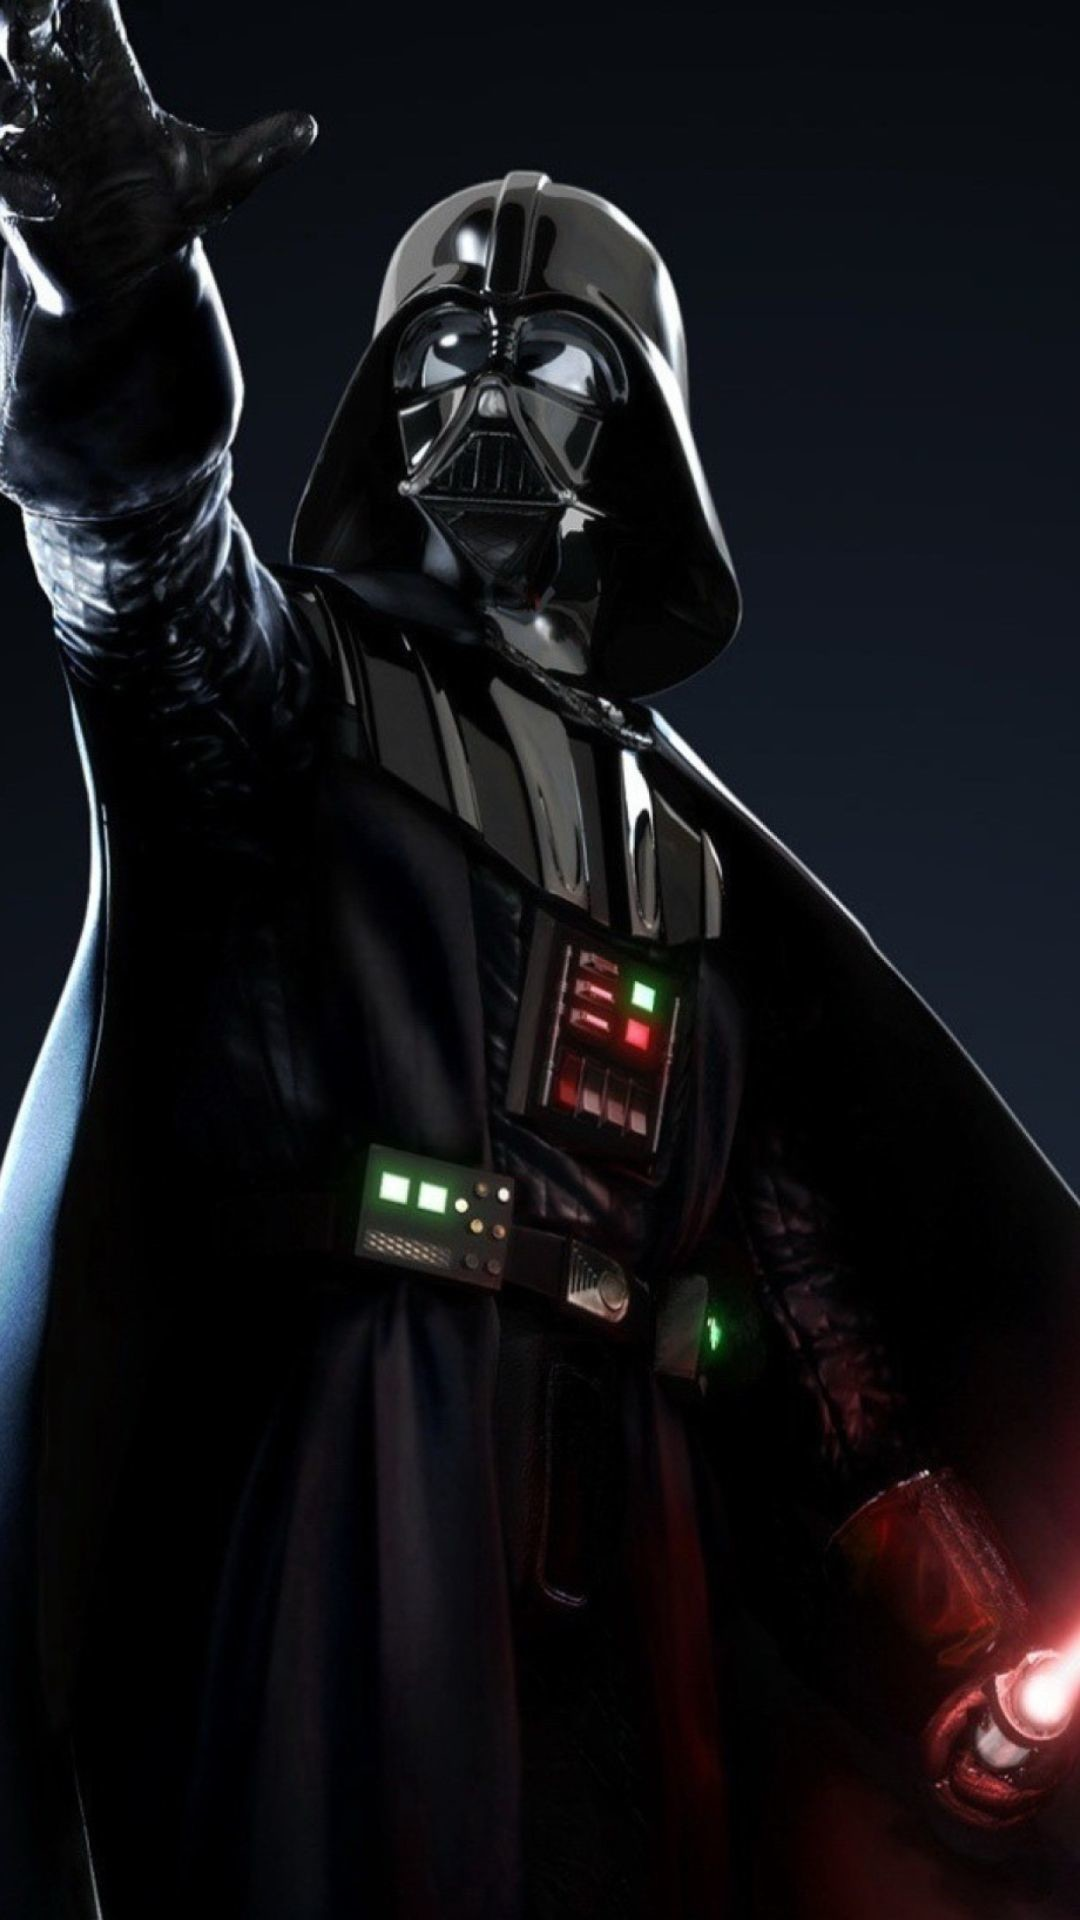 1080x1920, Darth Vader Wallpapers For Iphone 7, Iphone - Darth Vader Hd Wallpaper Iphone 7 - HD Wallpaper